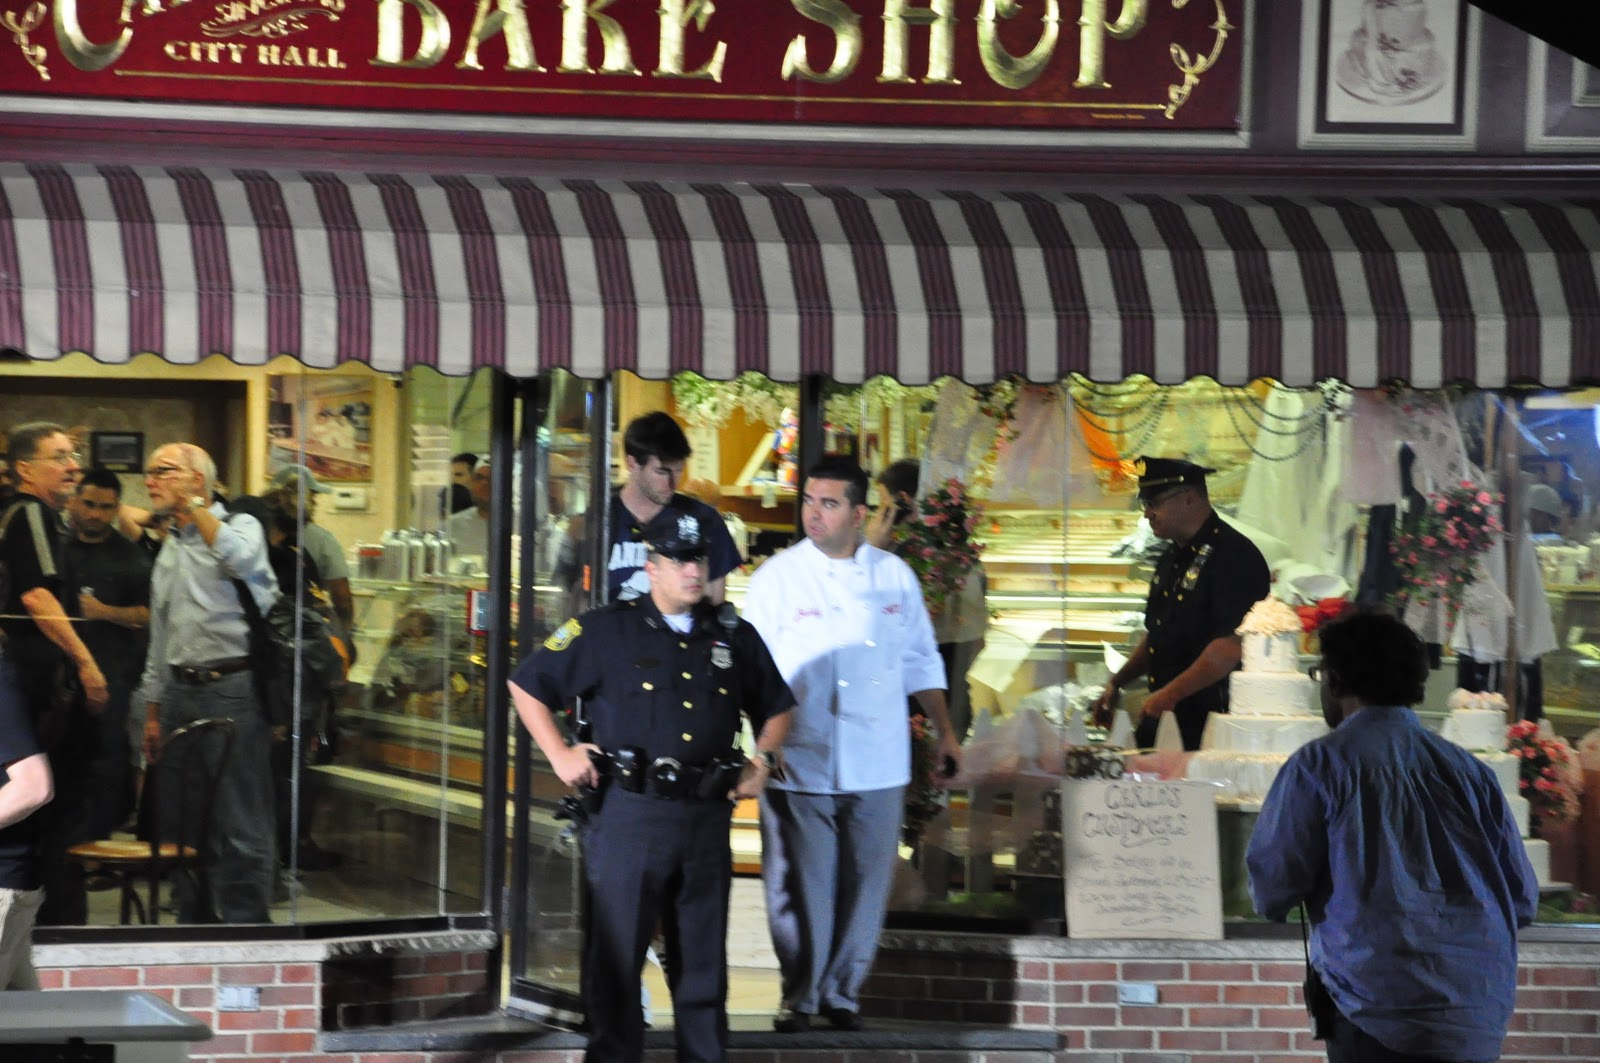 Cake boss arrested sentence buddy cake boss mother died view